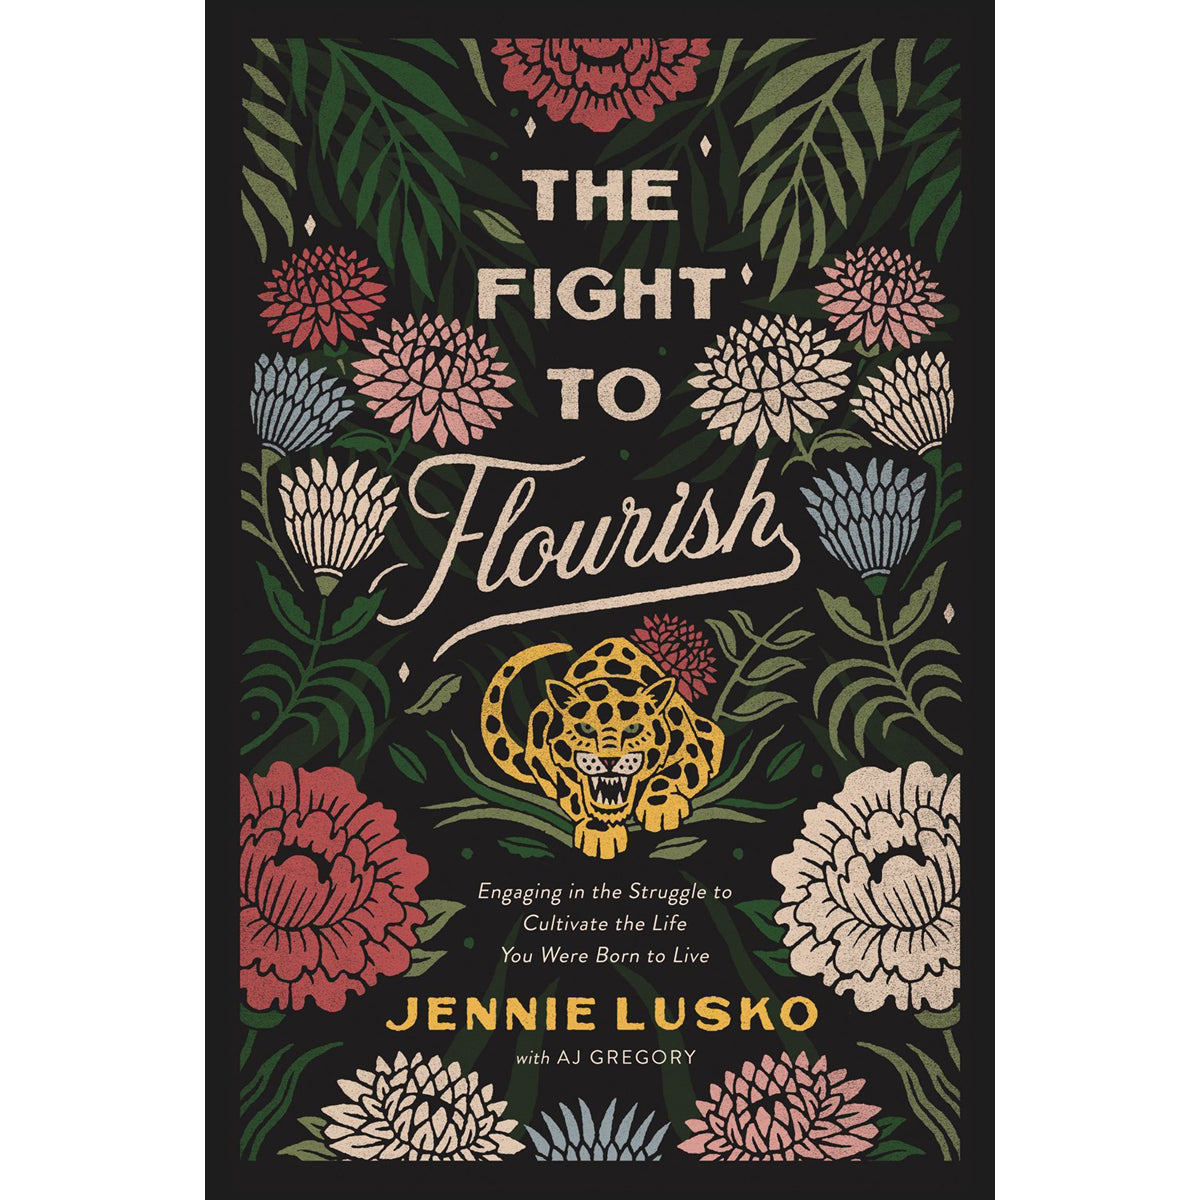 The Fight To Flourish: Engaging / Struggle / Cultivate The Life / Born / Live (Hardcover)